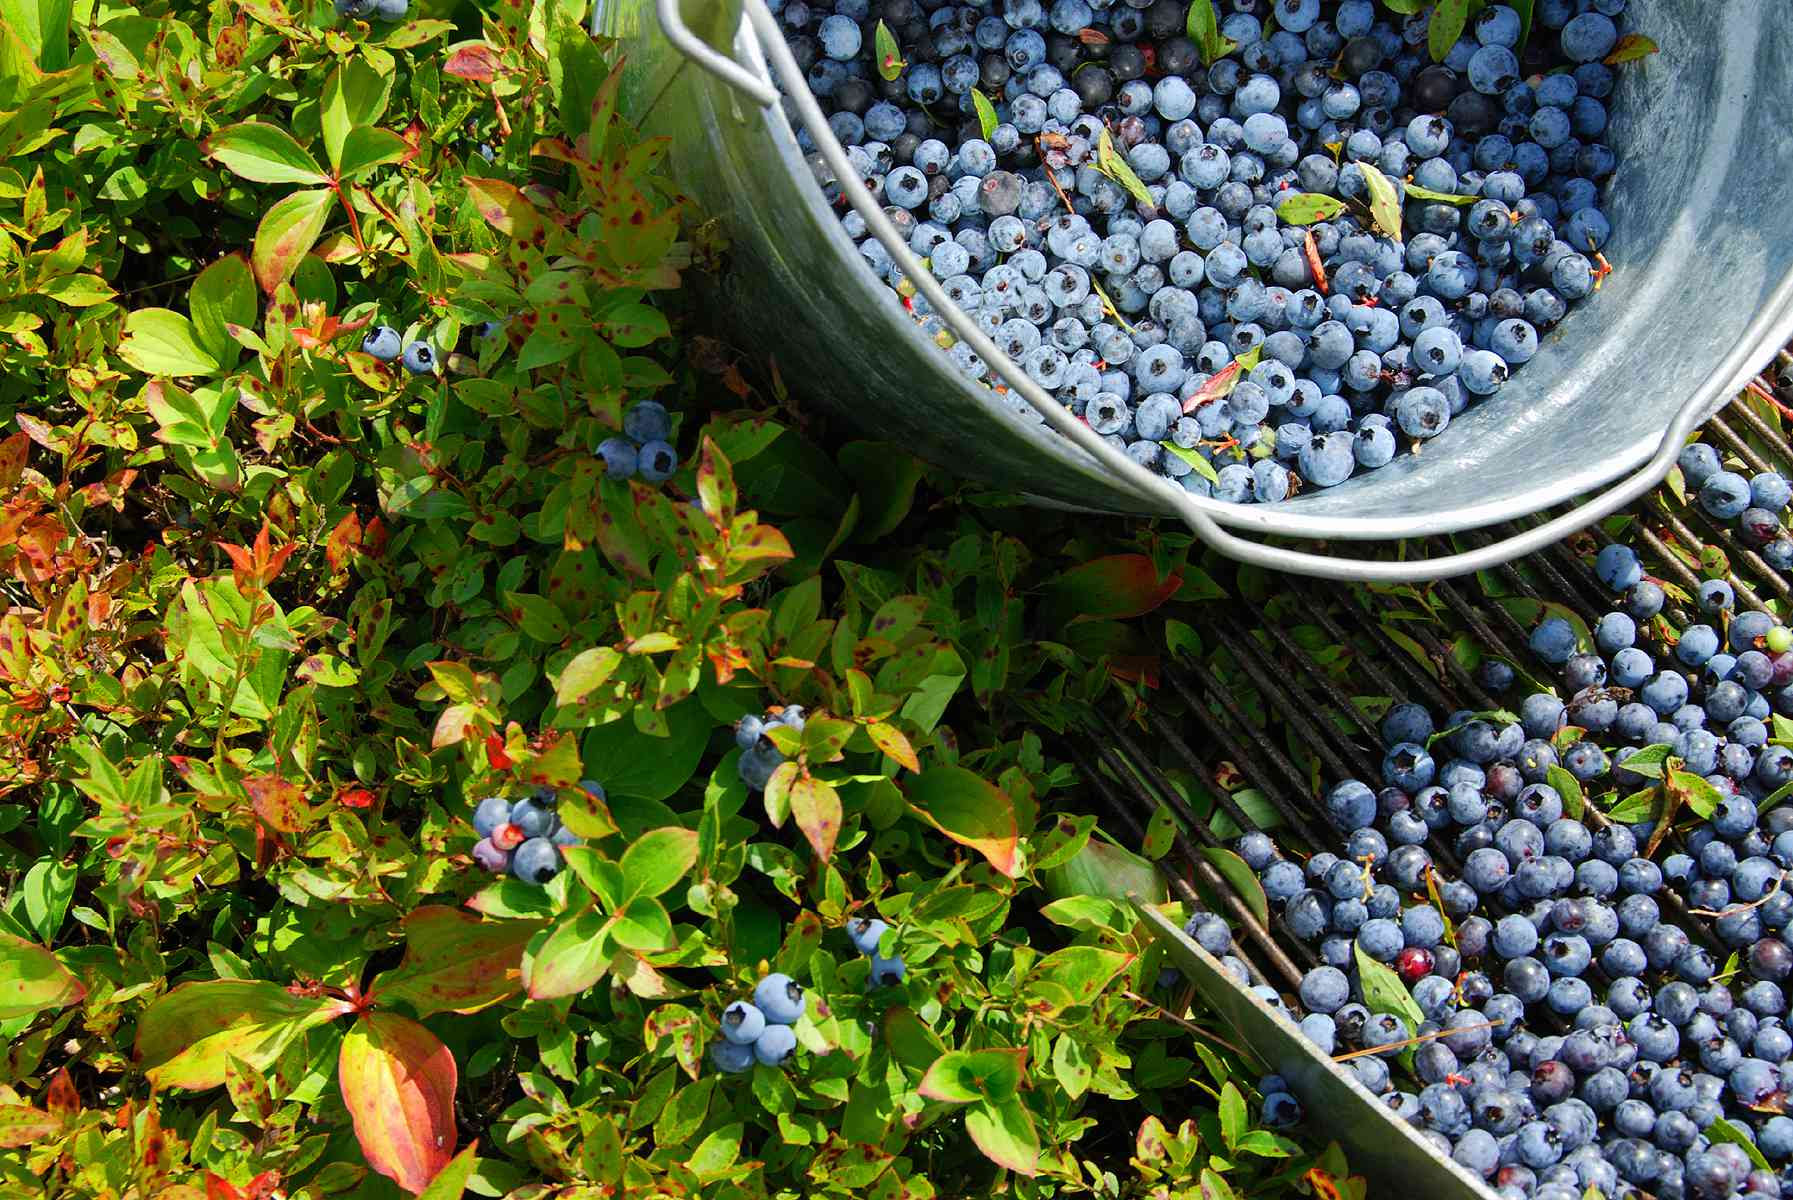 A metal bucket of blueberries and a bush